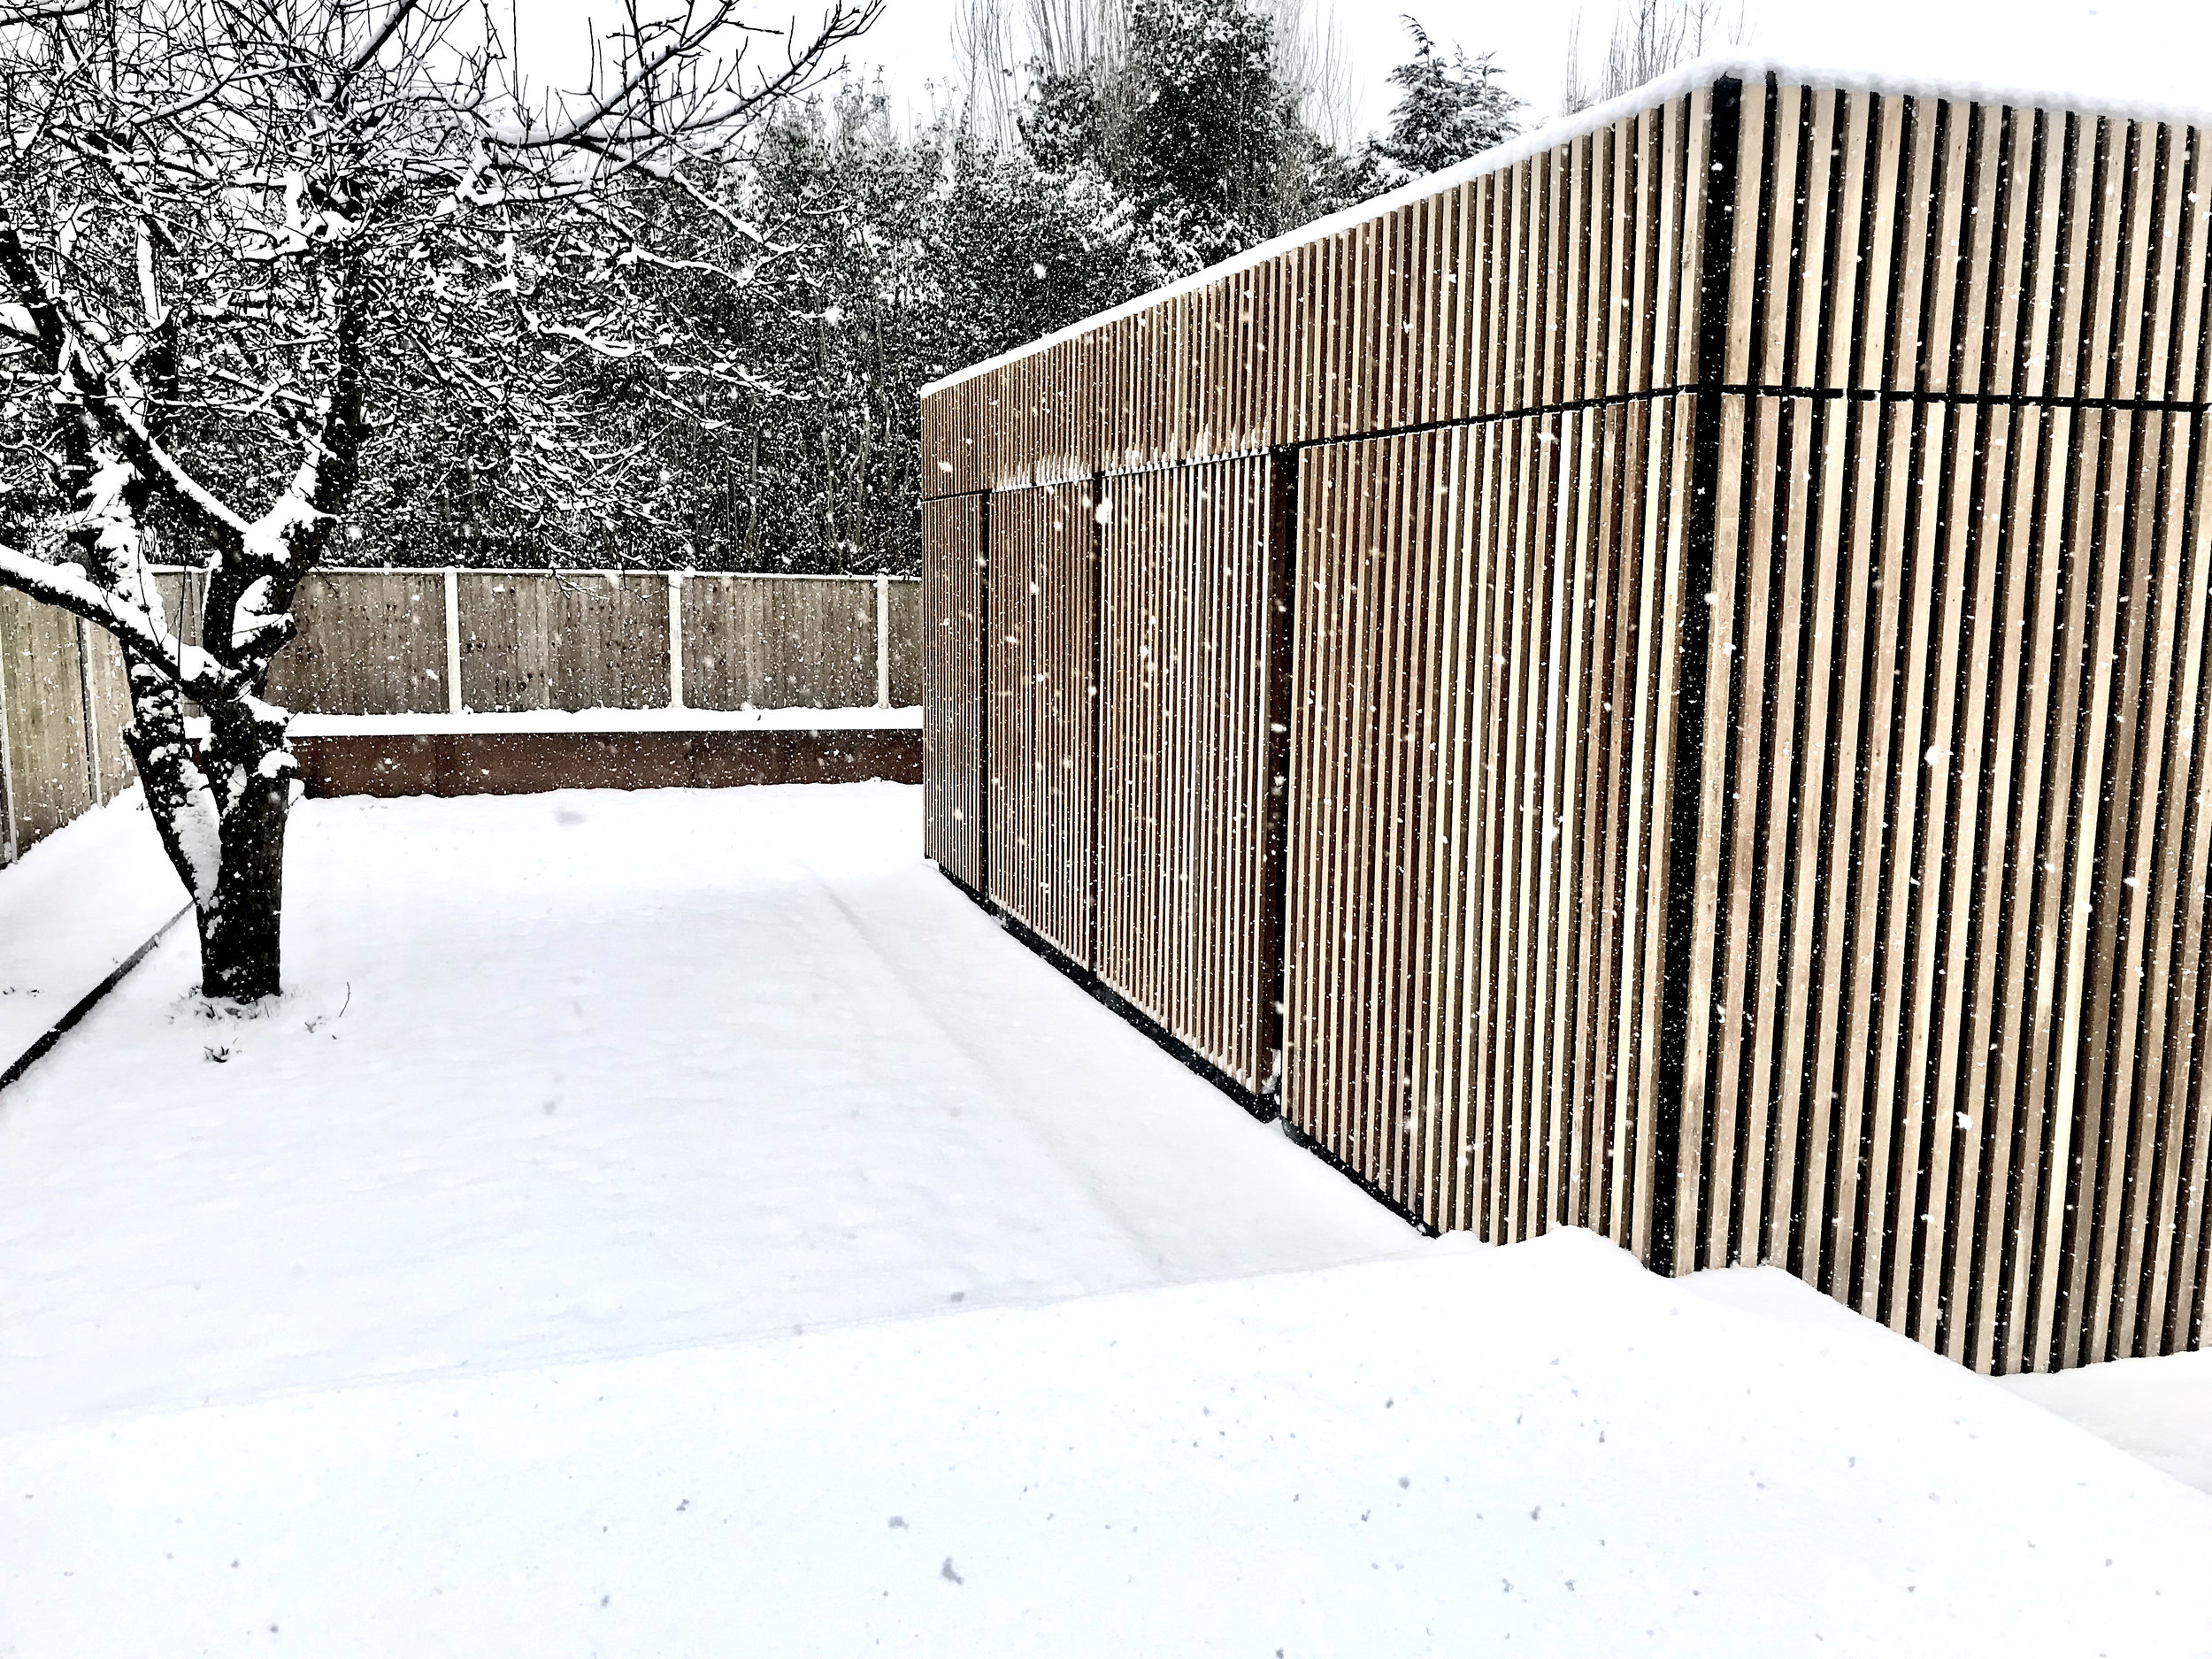 Our Architect's Studio is nearing completion and we will soon be able to share the finished results with everyone. The strong lines of white oak cladding and corten planters create a dramatic scene in the garden, cutting through the snow with ease. Next week our carpenter joiner is fitting the birch ply bookcase and storage units with integrated intelligent lighting. The natural wood and glass material palate will compliment the polished concrete heated floors - ideal for this beautiful but brisk weather!